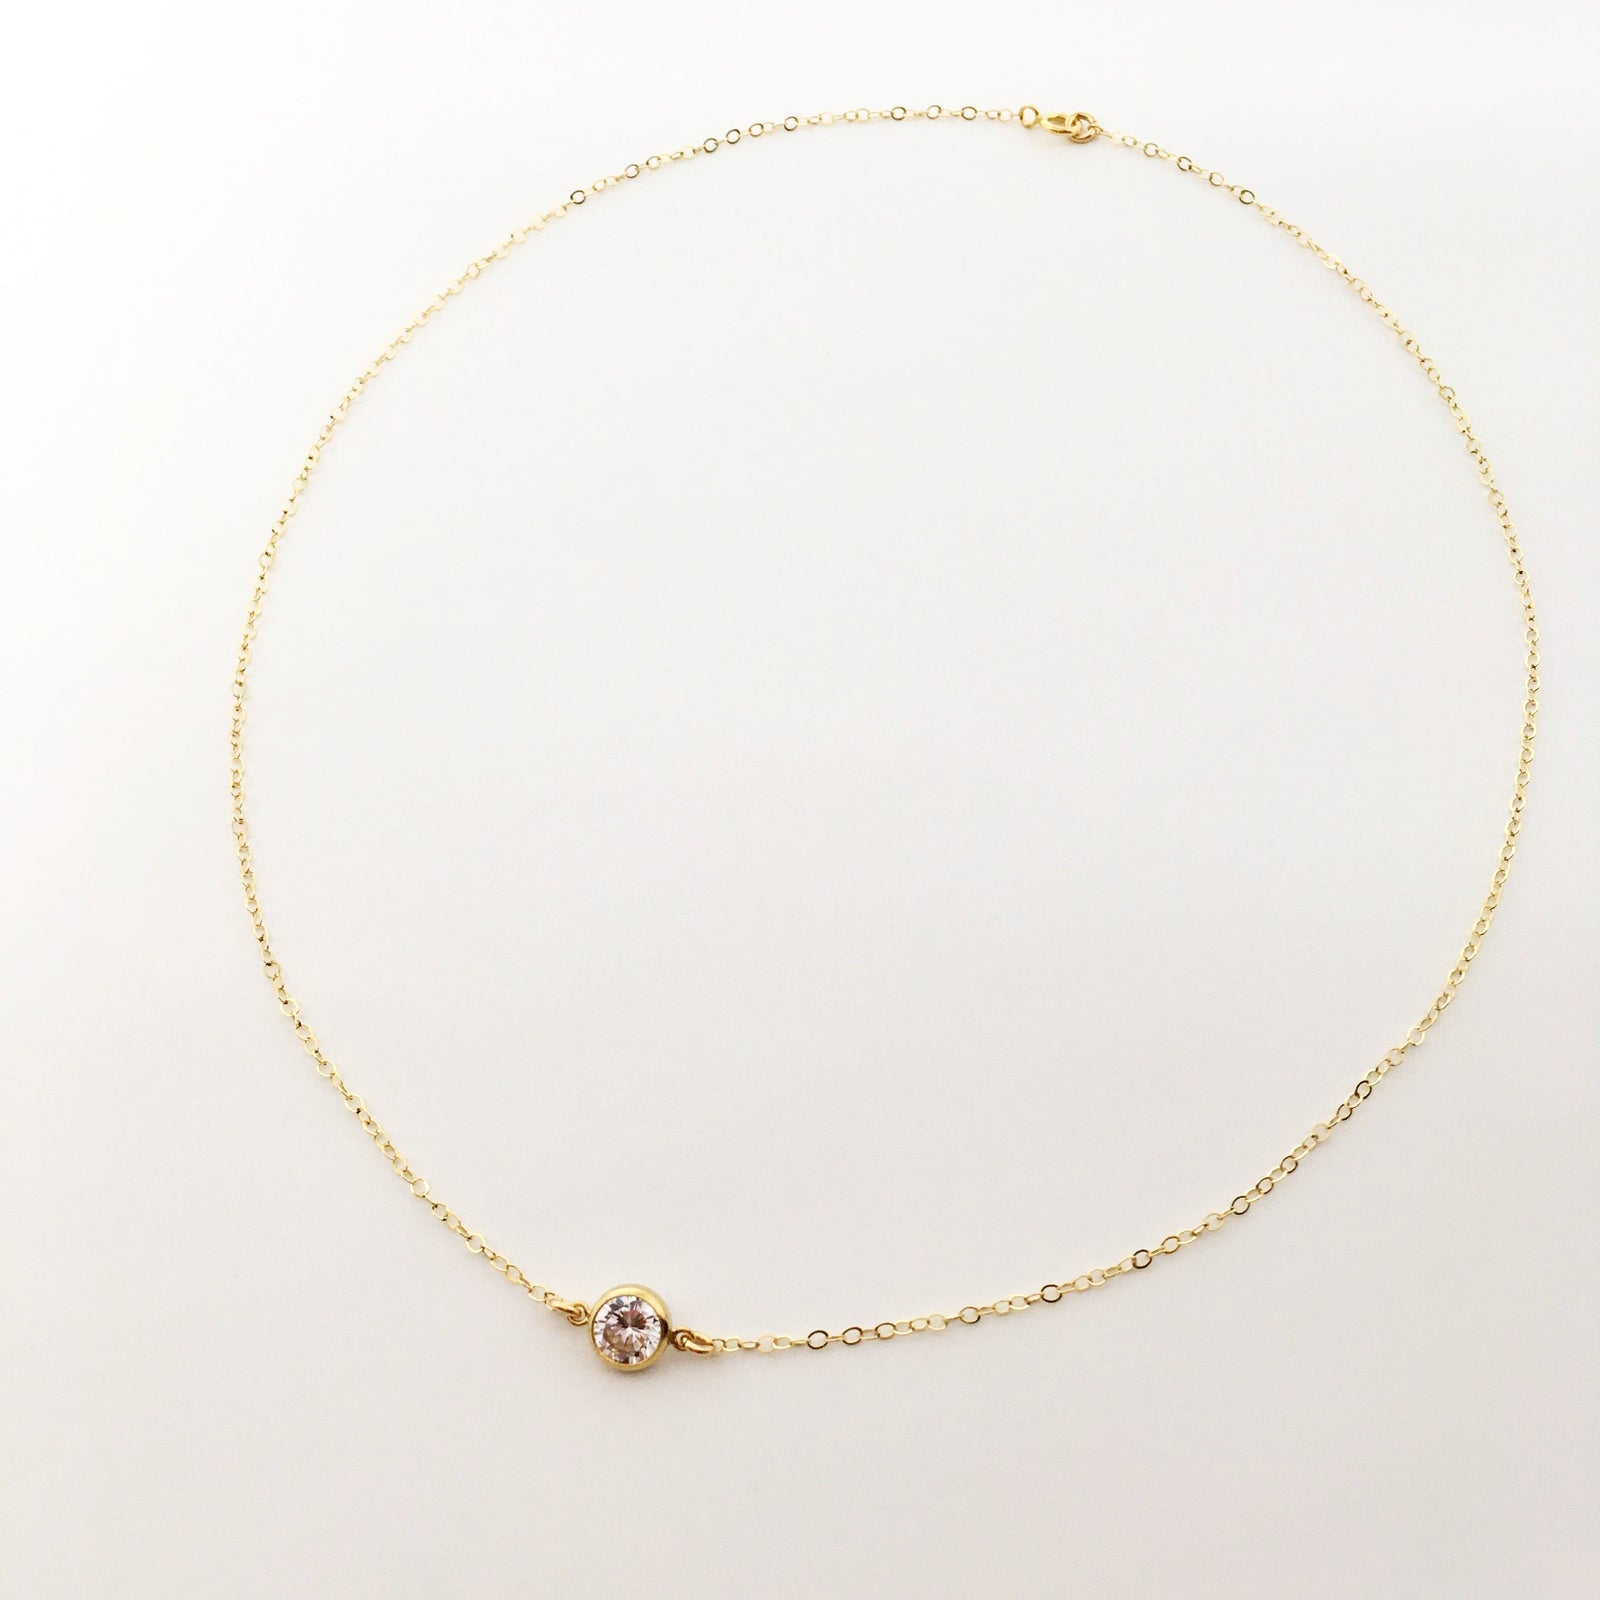 RHINESTONE 14K GOLD-FILLED NECKLACES | MED & SM